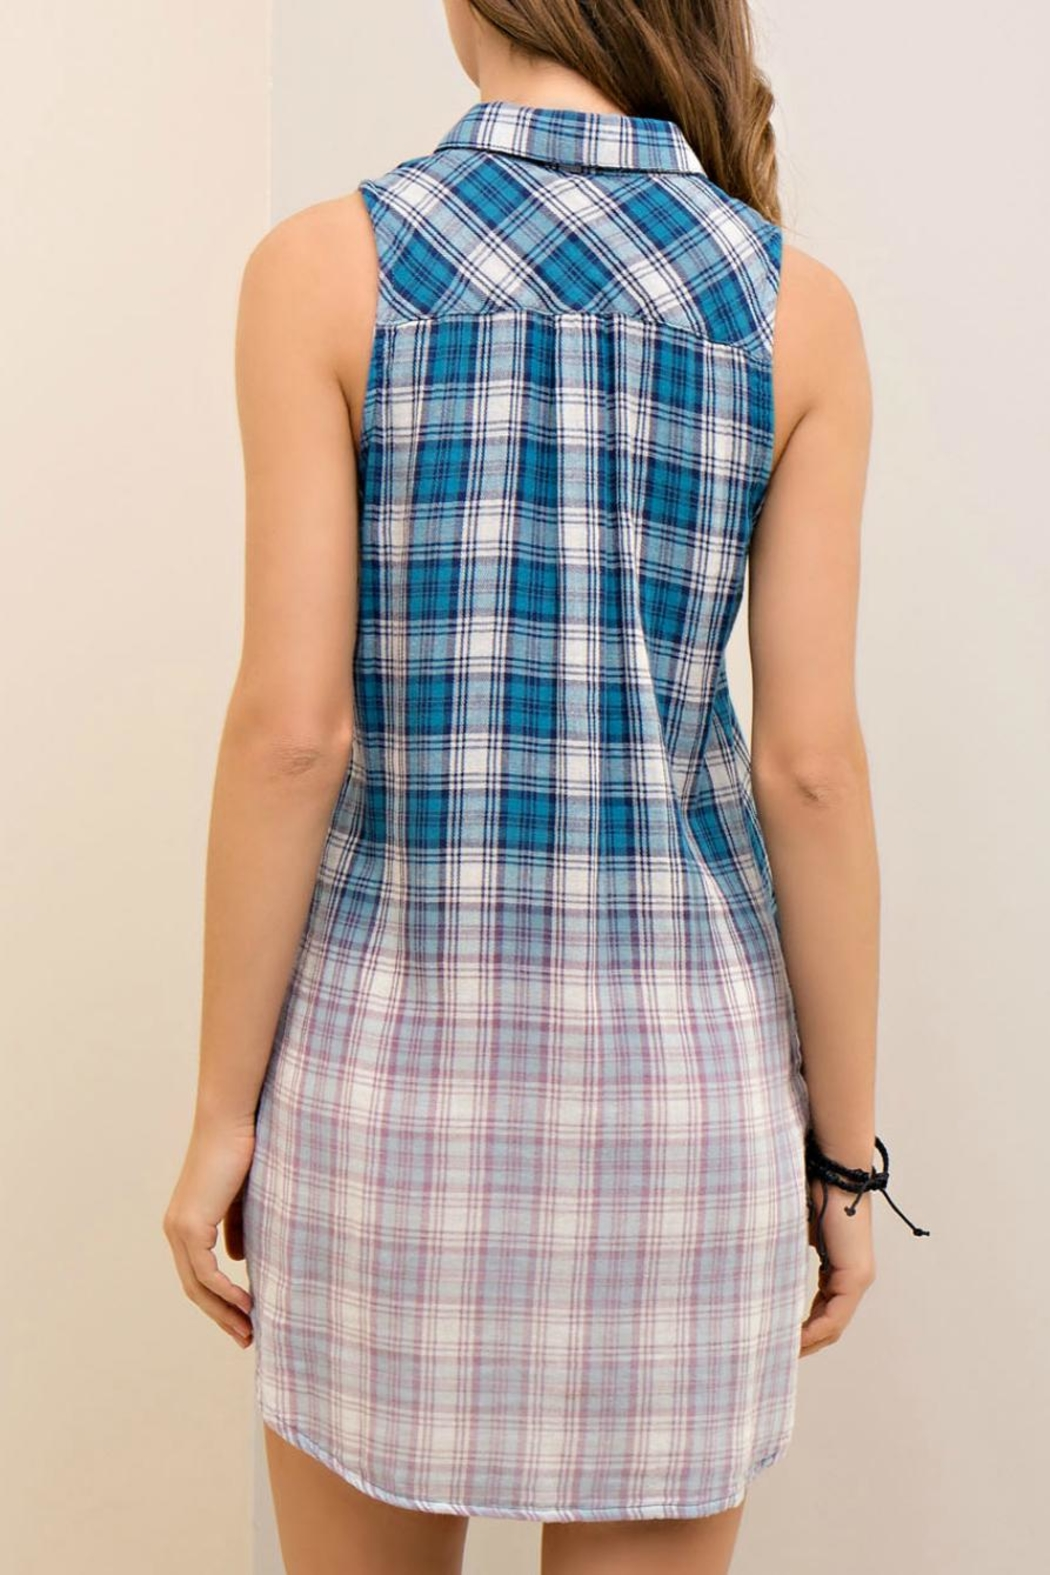 Entro Ombre Plaid Dress - Front Full Image